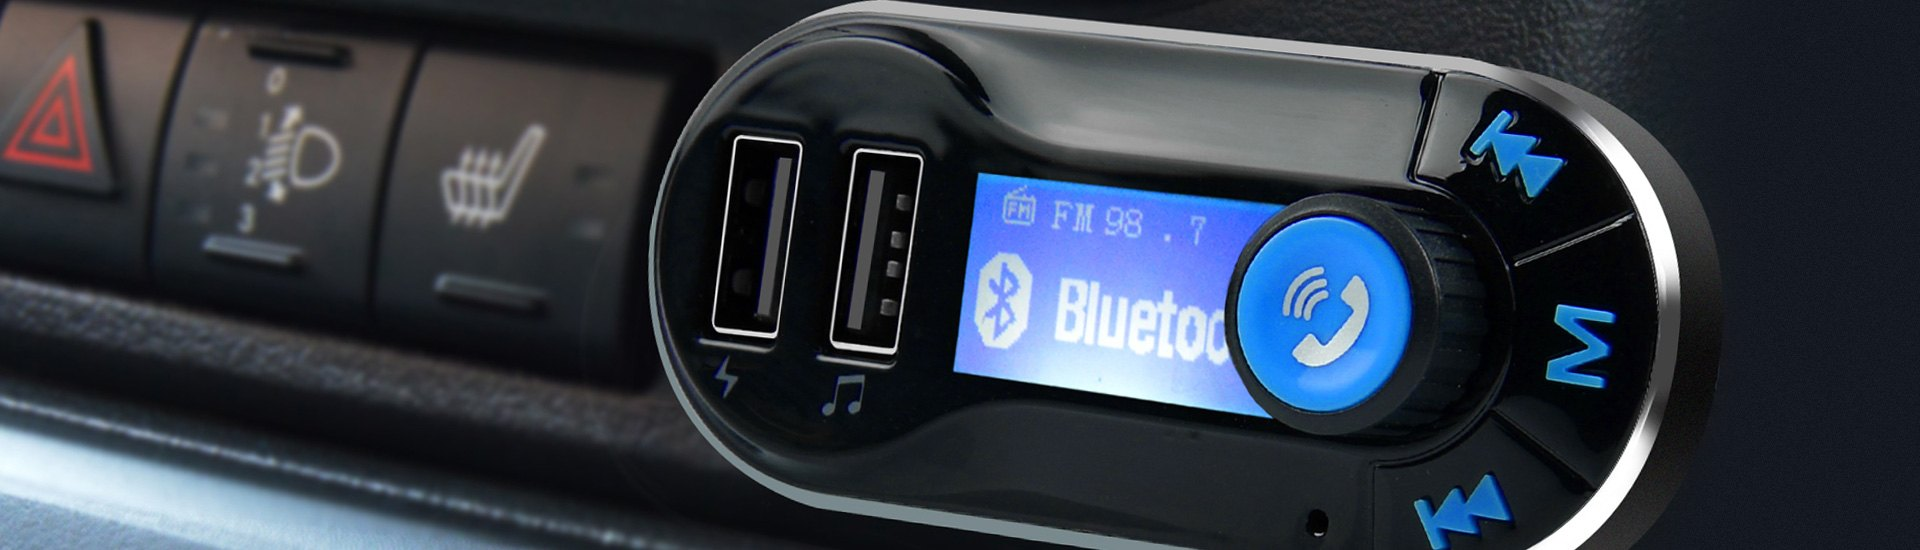 Bluetooth Integration Products for Your Vehicle